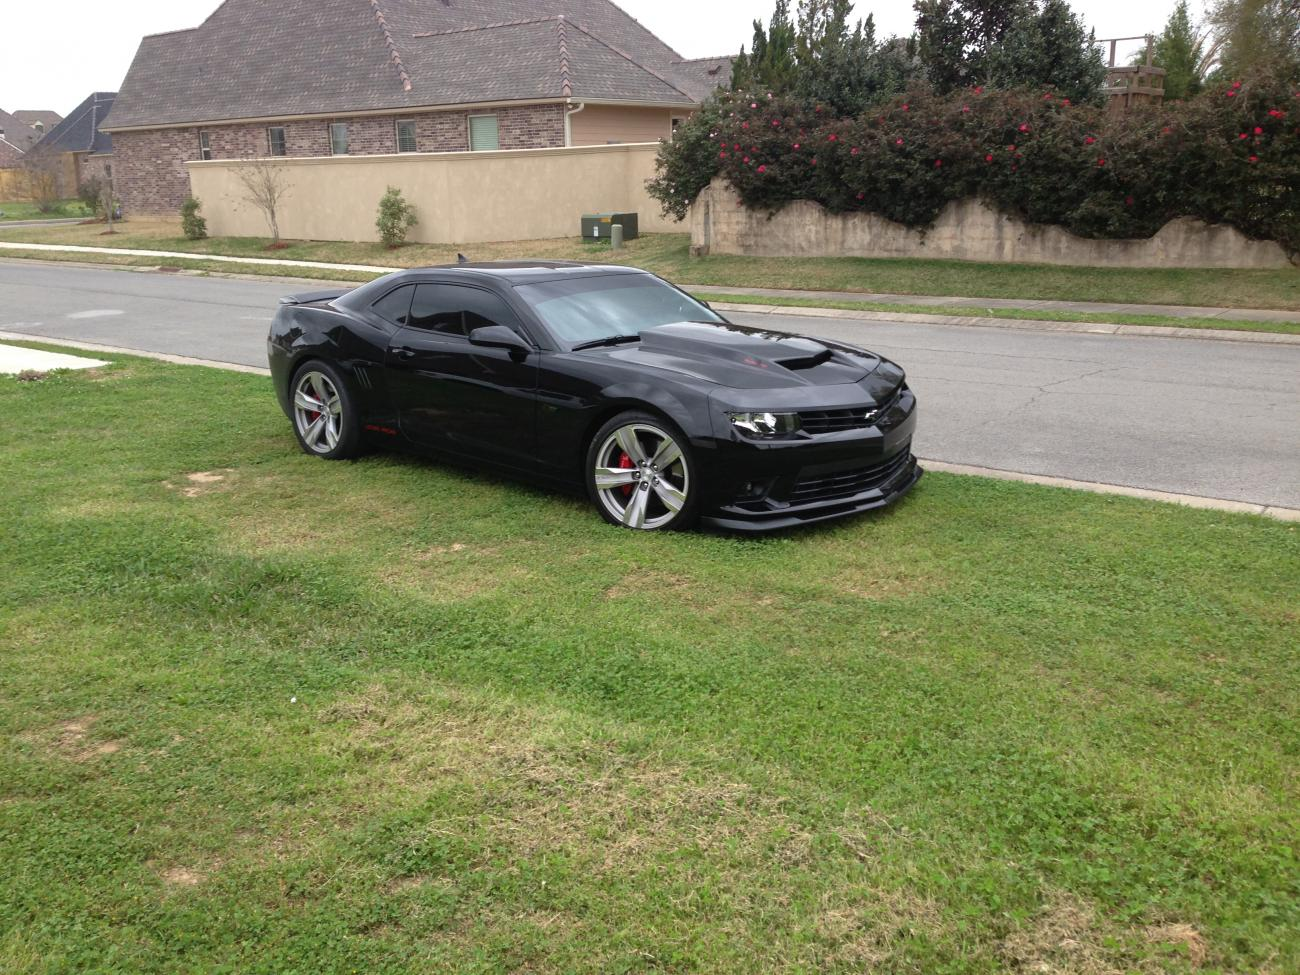 2014 2ss 1le for sale make me an offer pics included camaro5 chevy camaro forum camaro. Black Bedroom Furniture Sets. Home Design Ideas